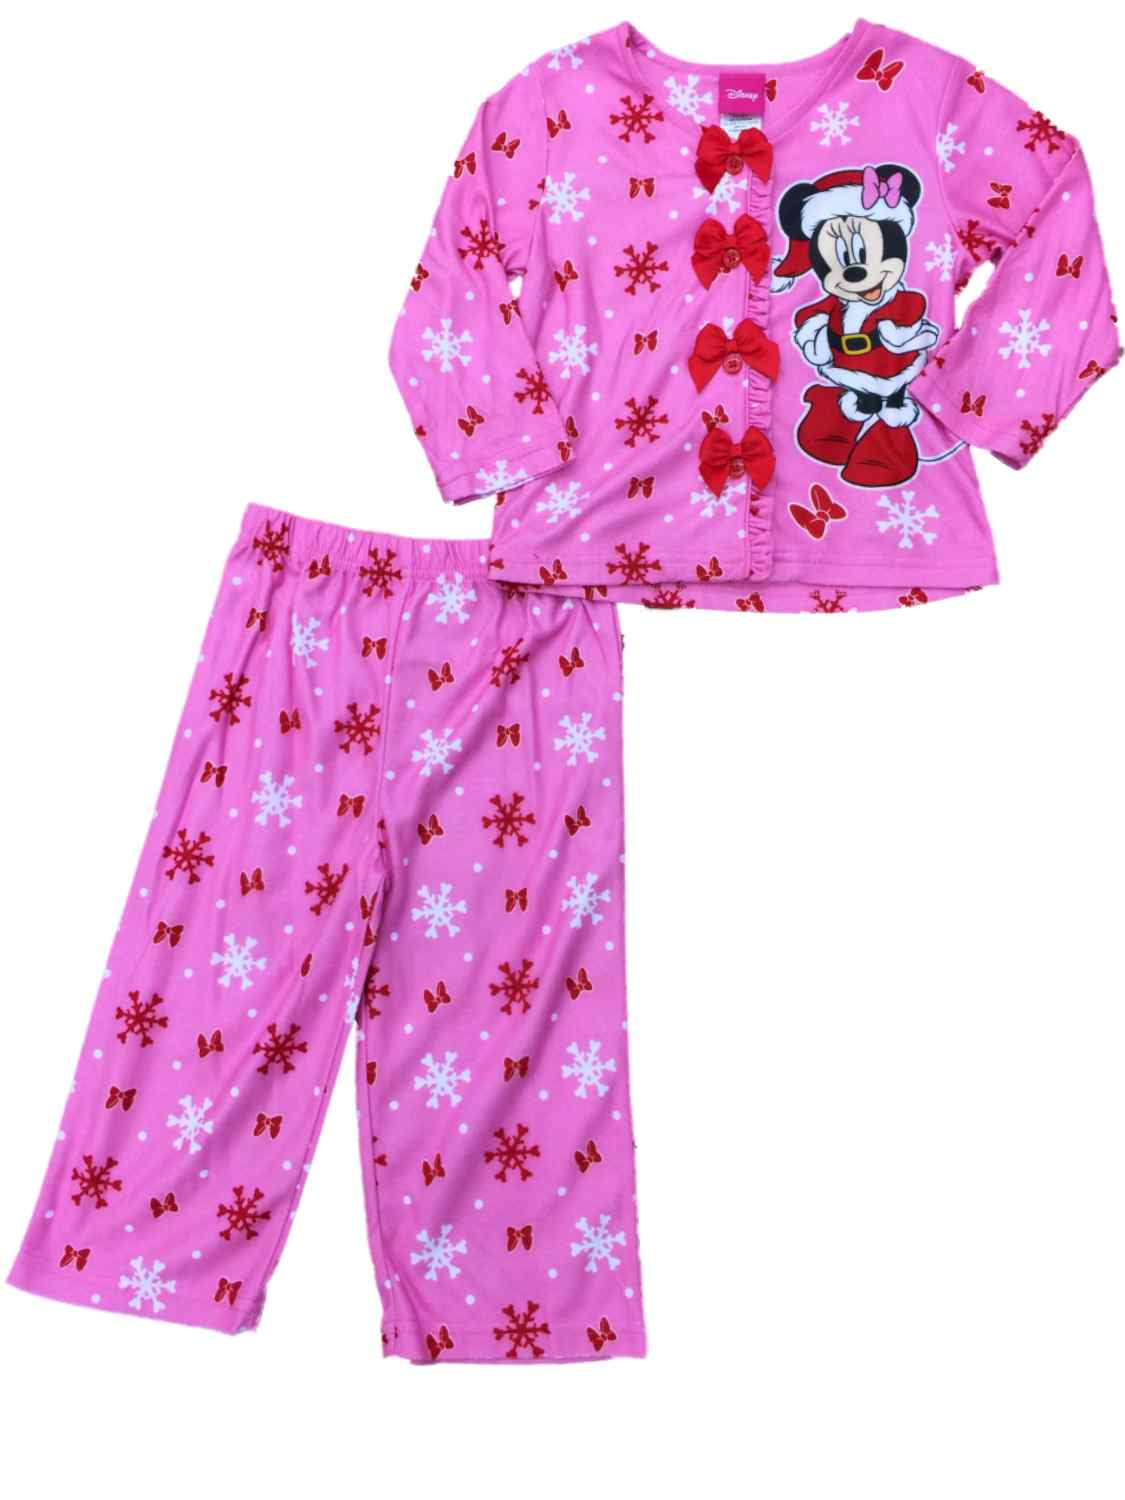 Toddler Girls Pink Minnie Mouse Christmas Pajamas Snowflake Holiday Sleep Set